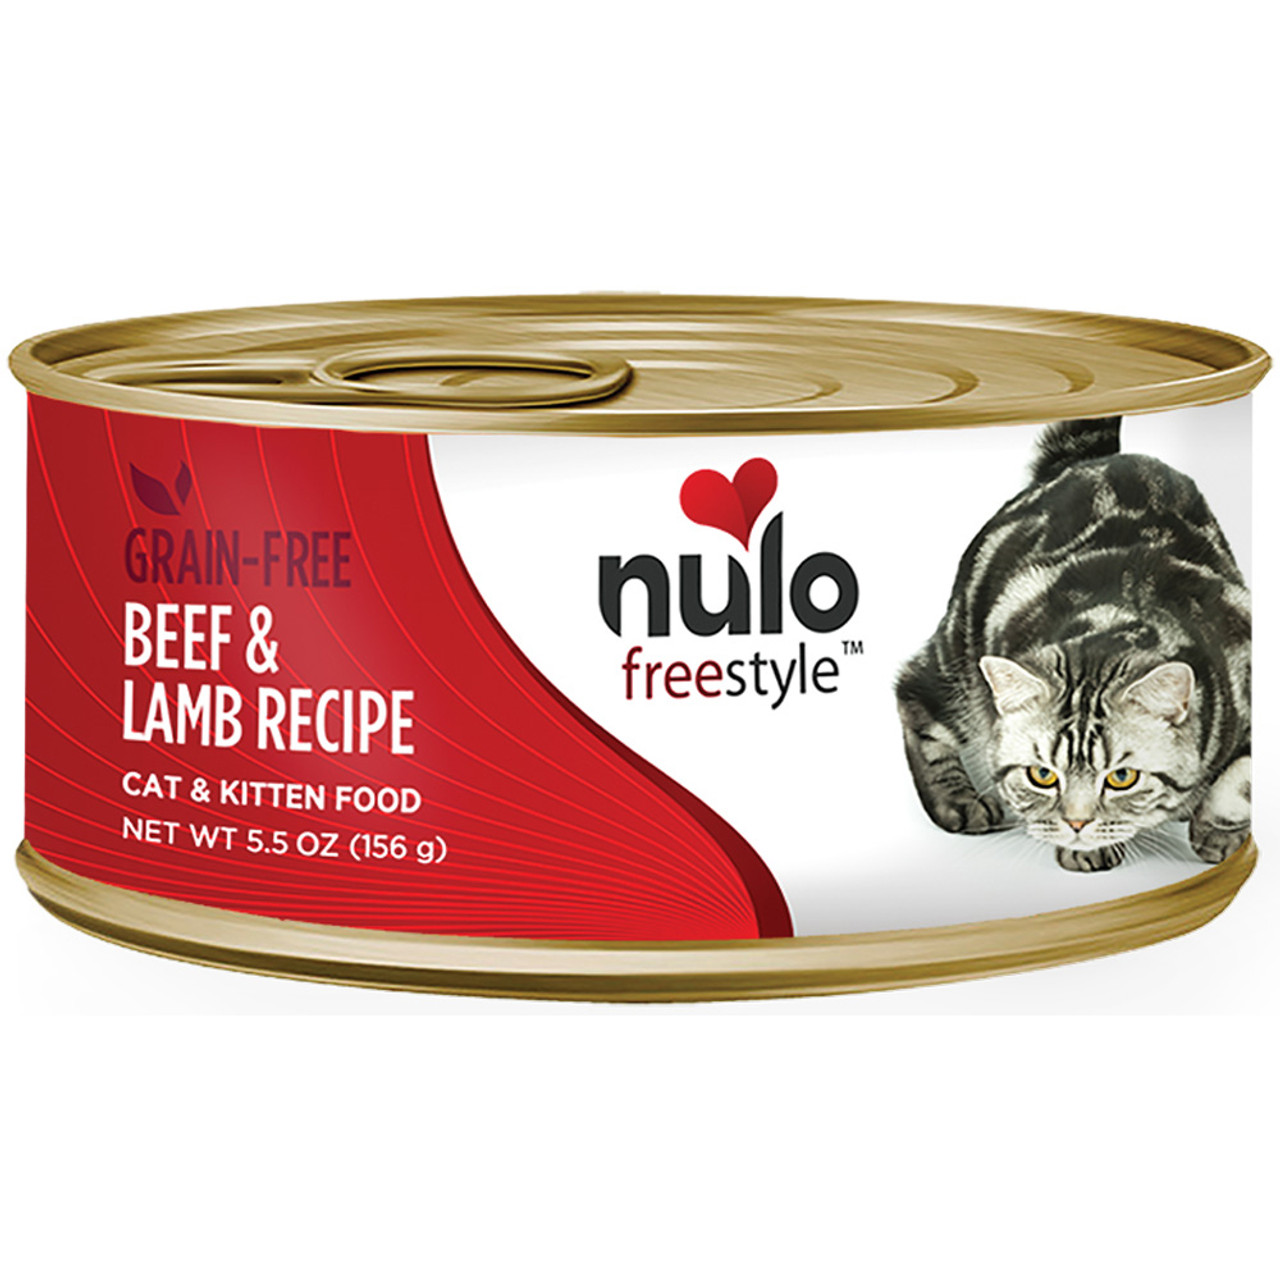 Nulo Freestyle Cat & Kitten Beef & Lamb Recipe Canned Cat Food